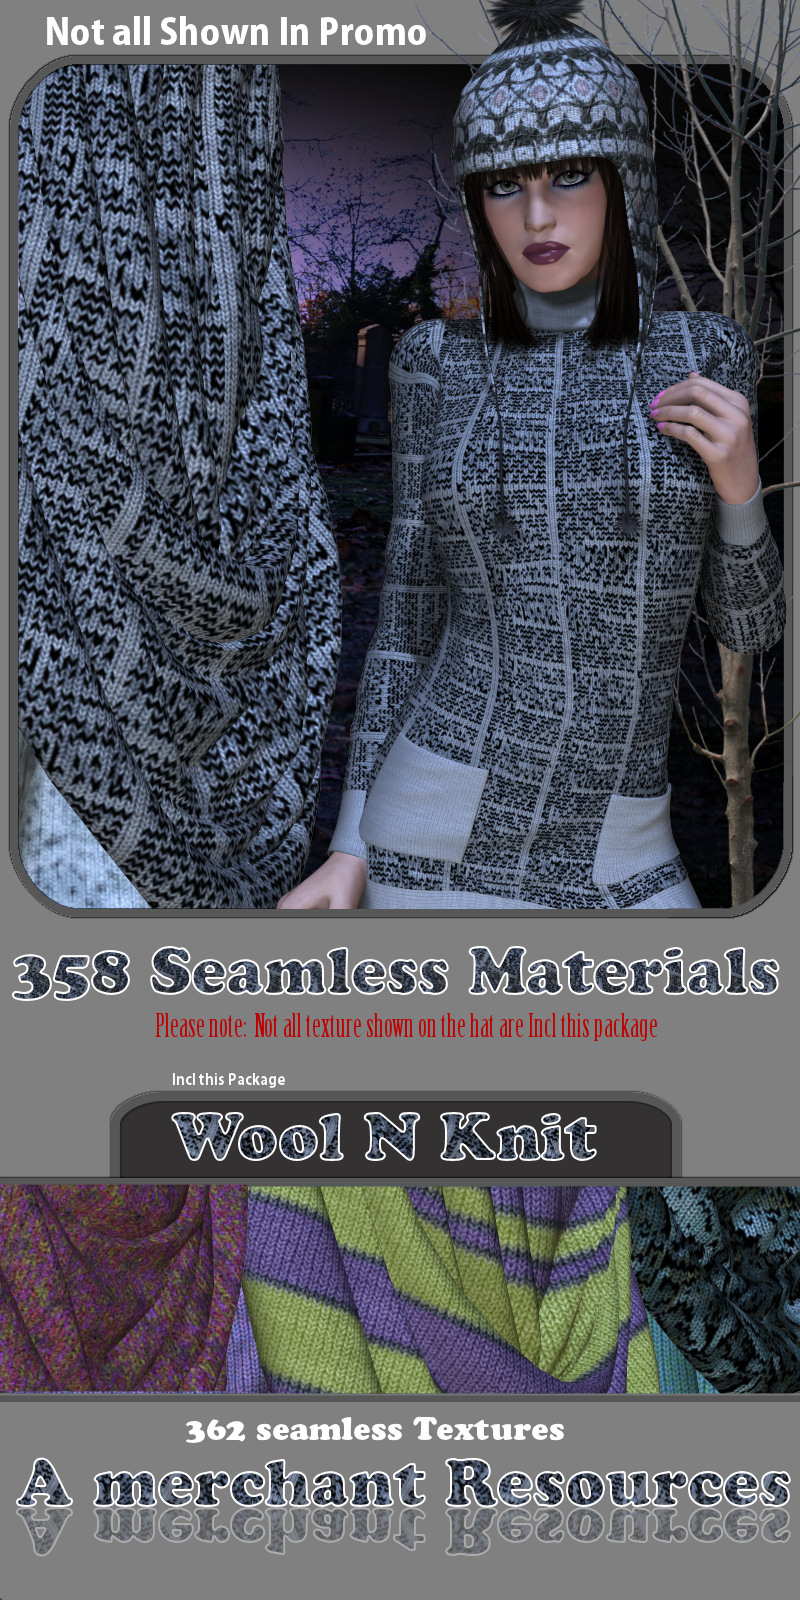 WhoolNknit materials